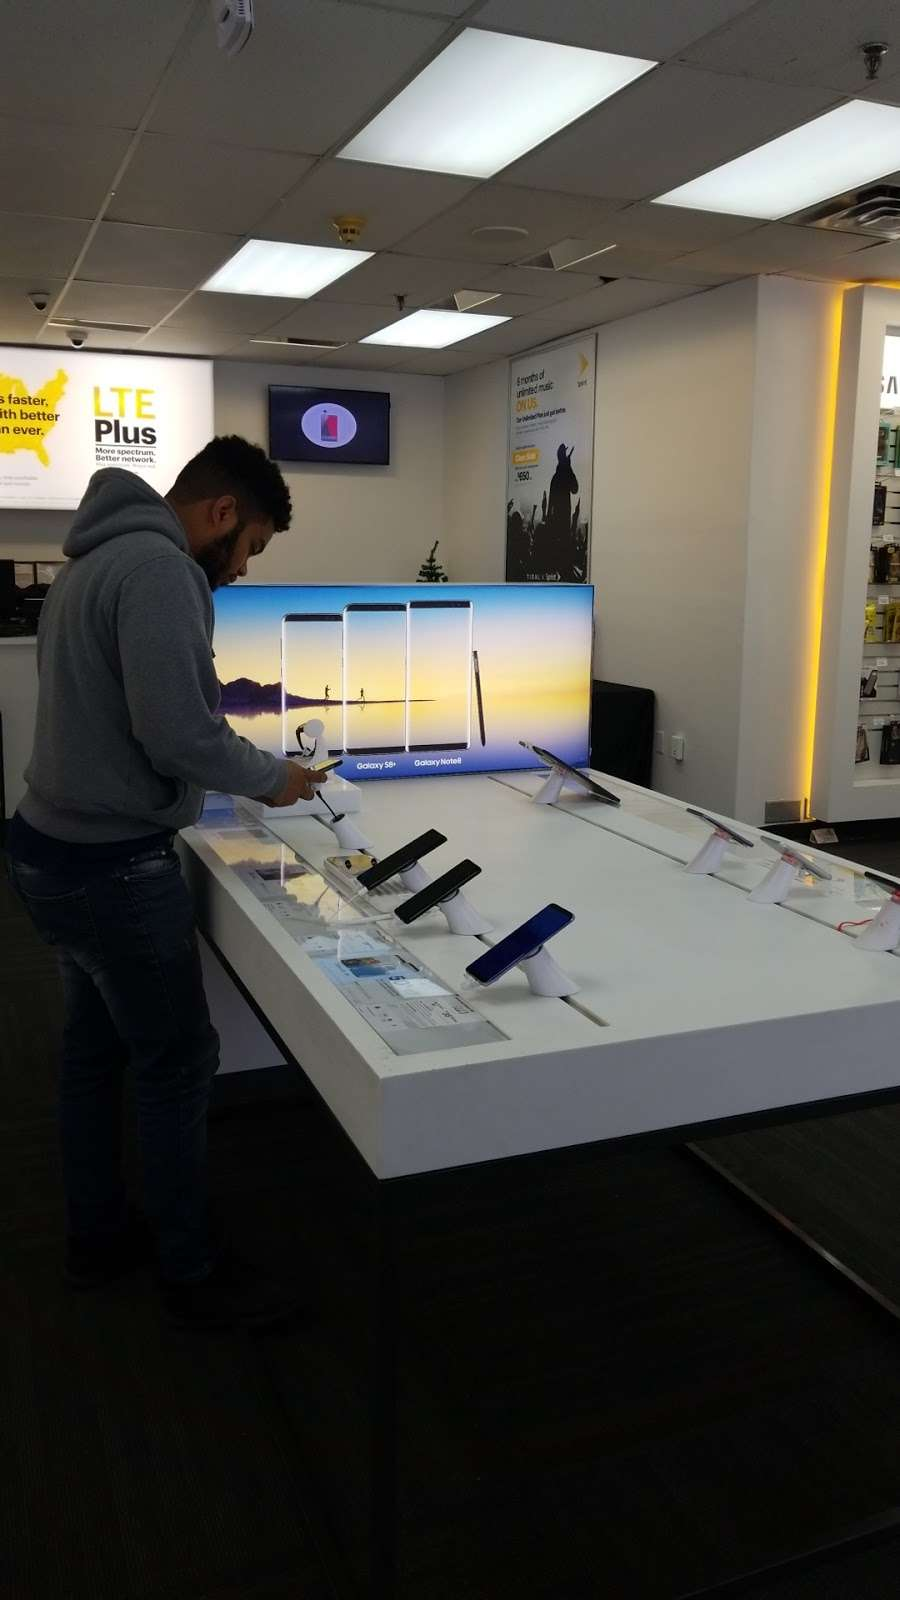 Sprint Store - electronics store  | Photo 7 of 8 | Address: 112A Wheeler Rd, Central Islip, NY 11722, USA | Phone: (631) 533-9999